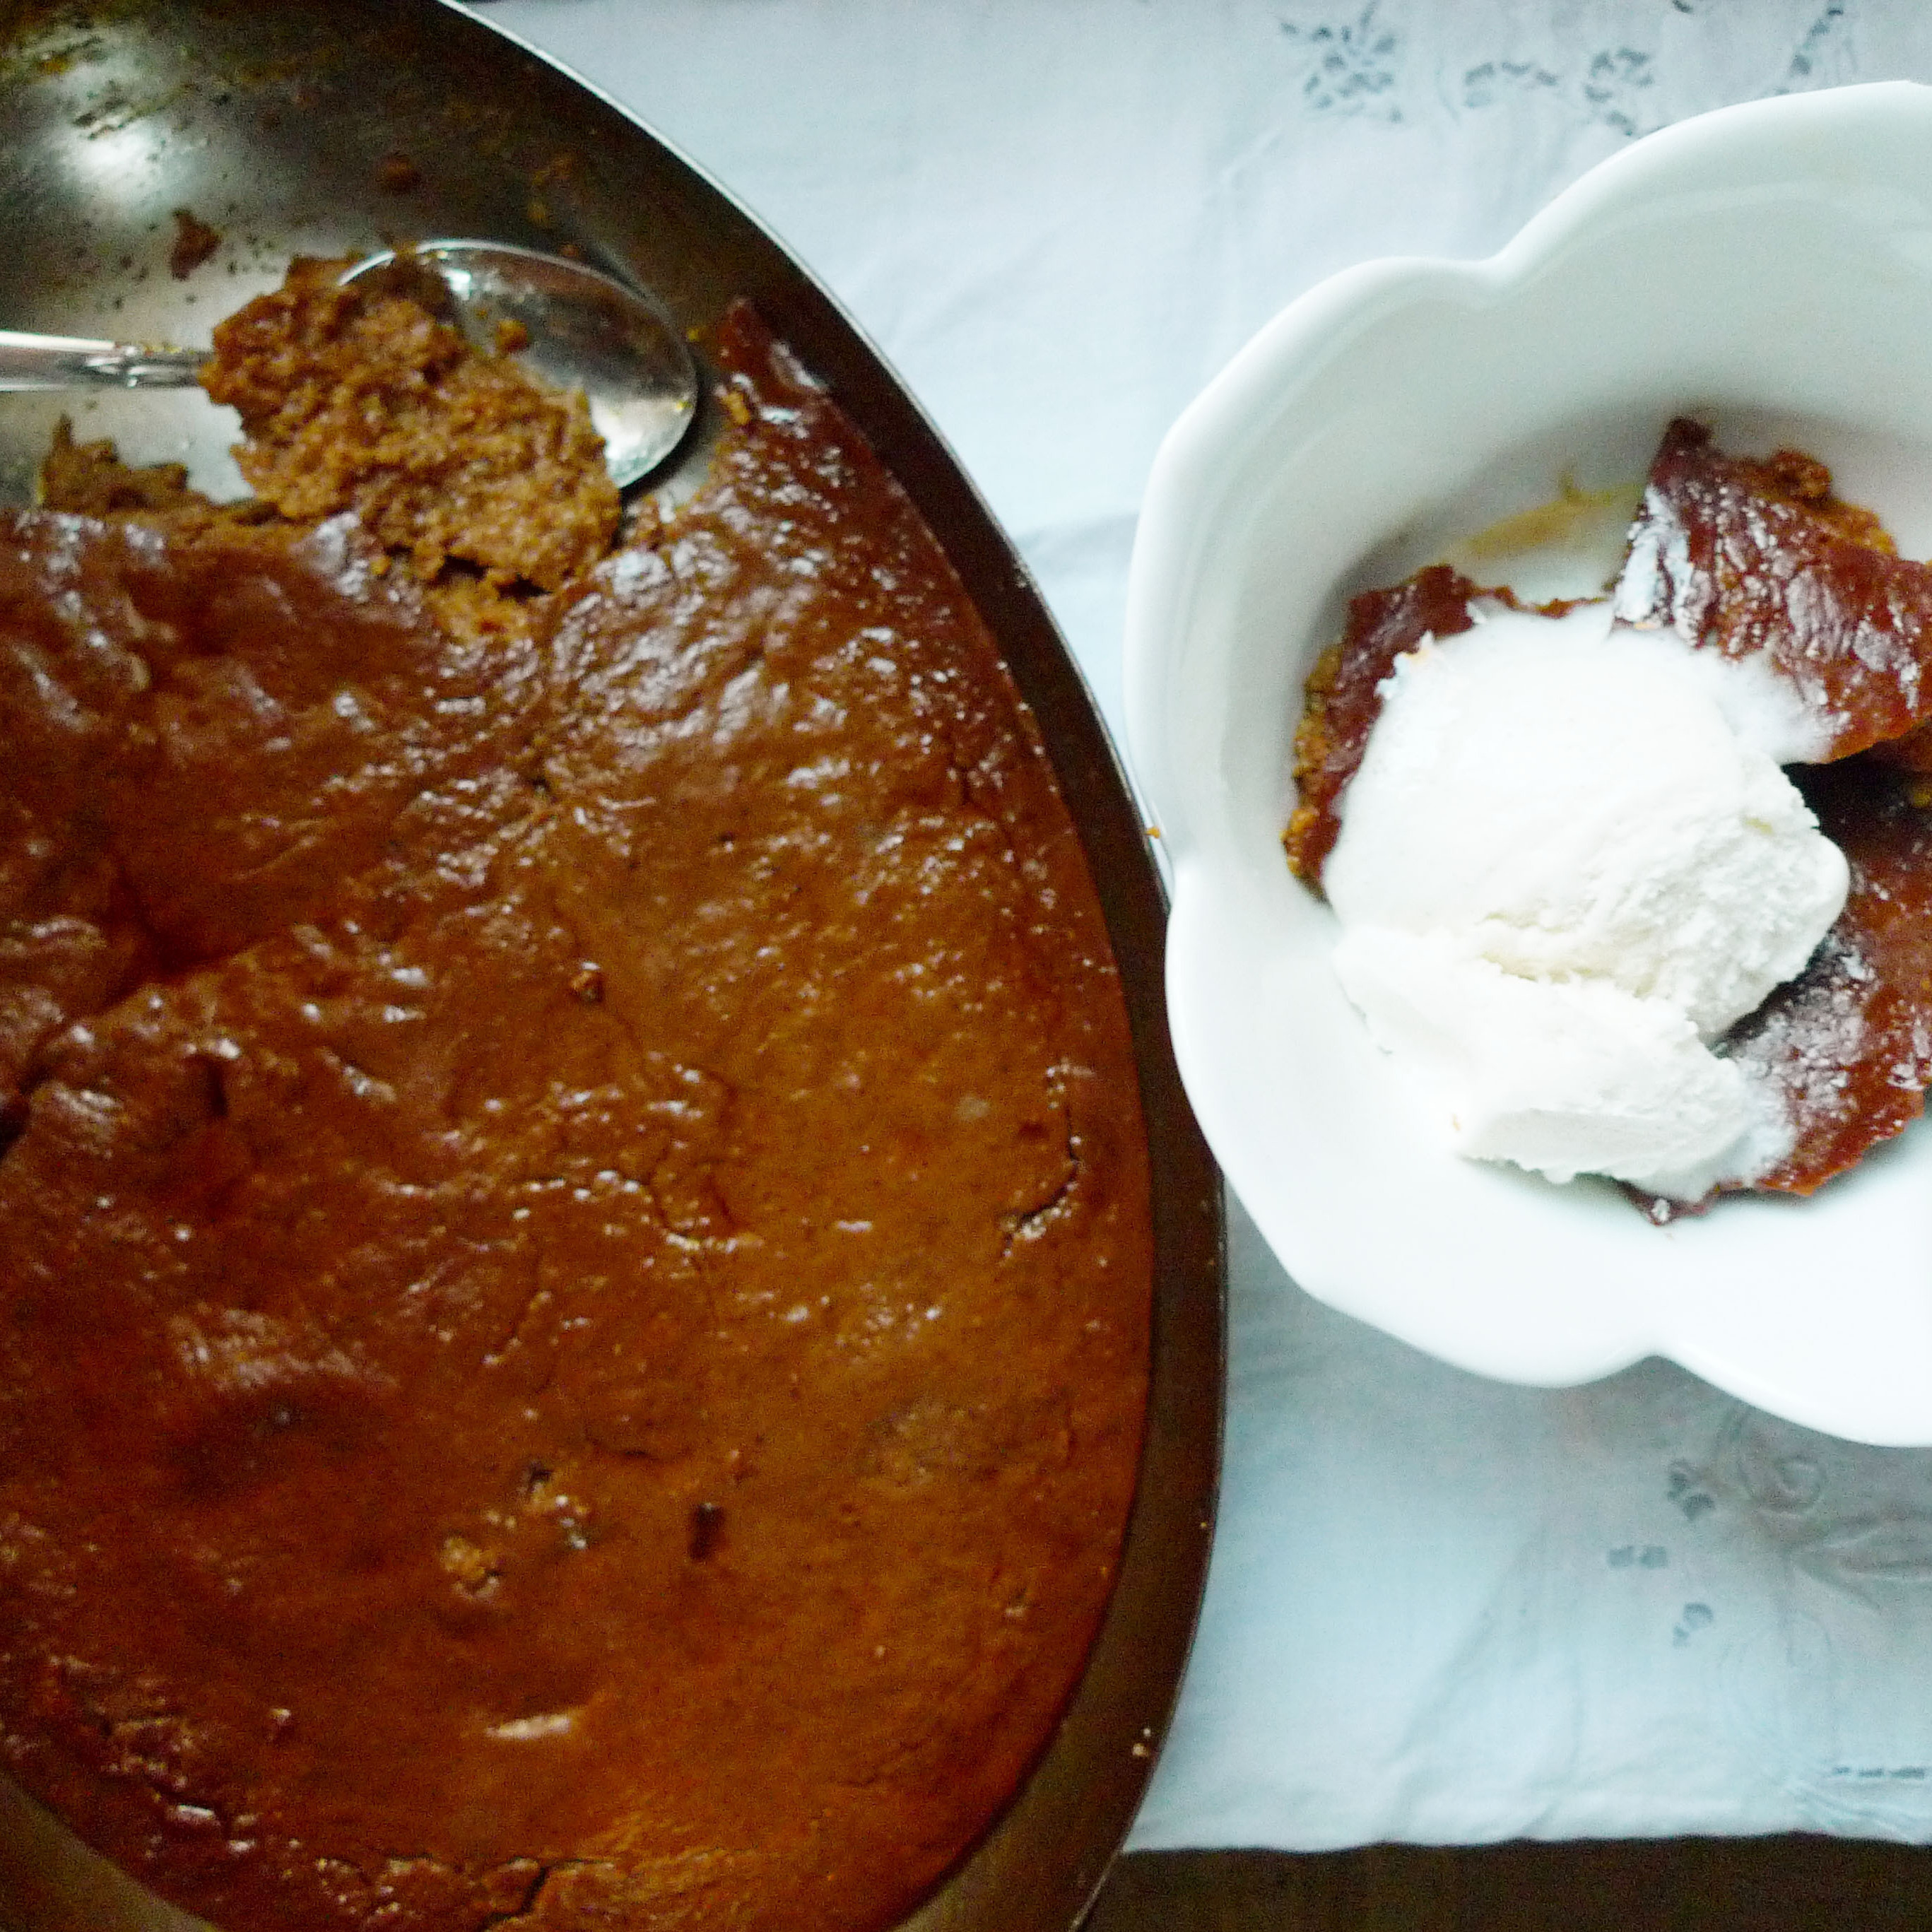 Indian pudding, served warm with vanilla ice cream -- a dish well worth celebrating.